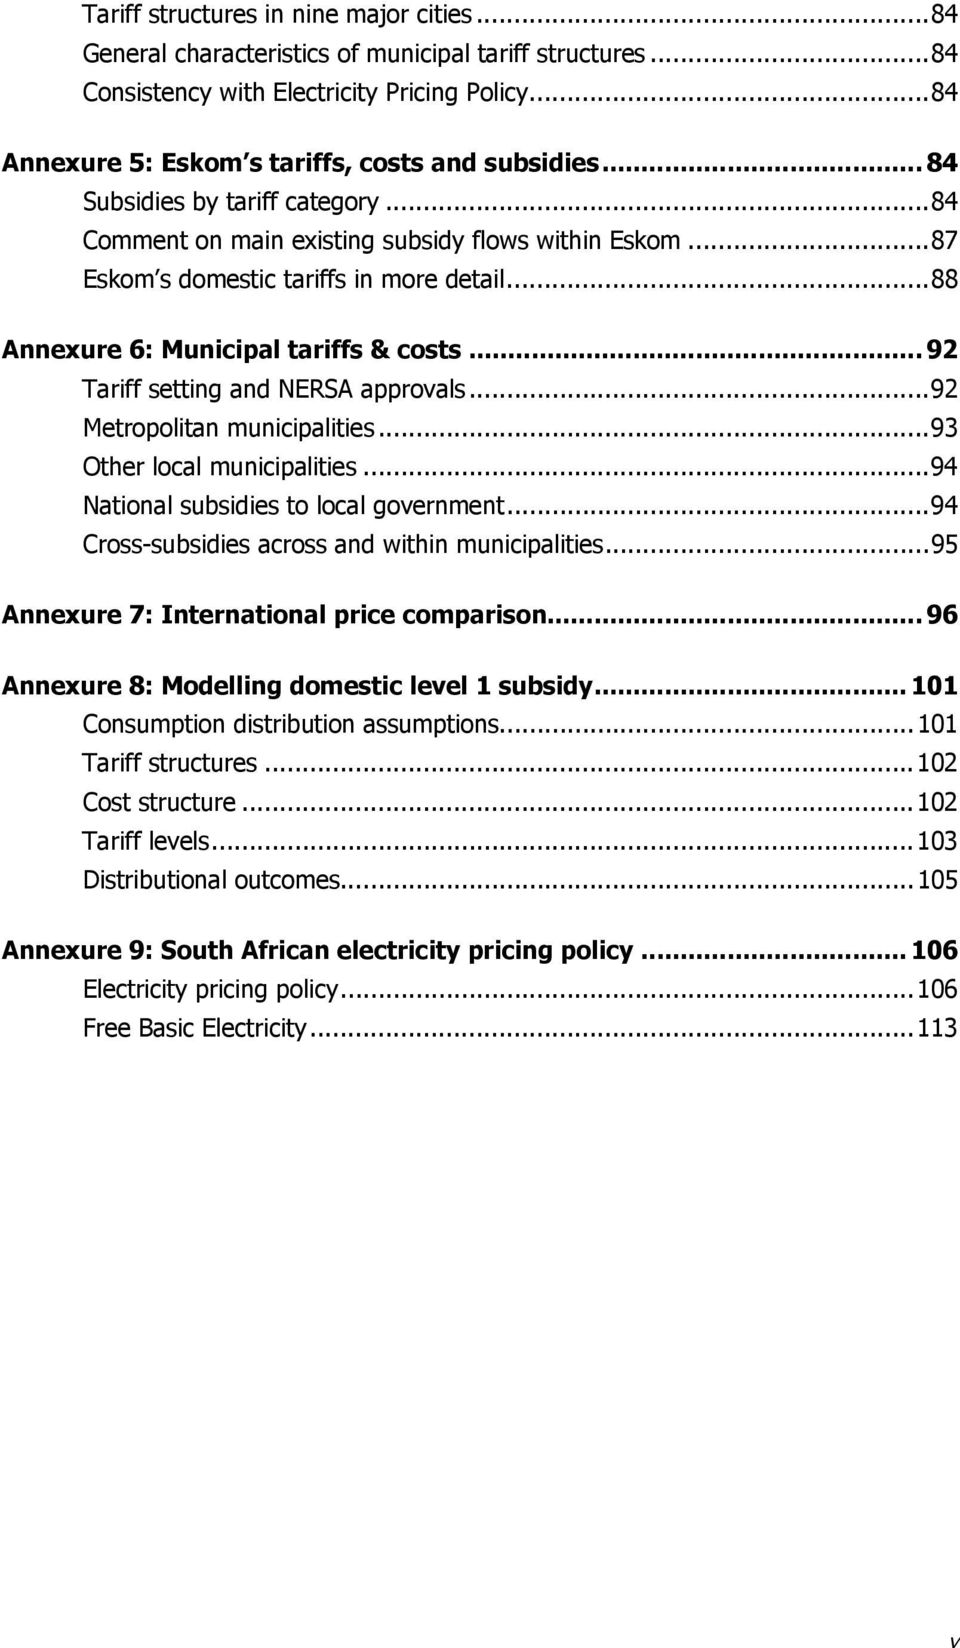 ..92 Tariff setting and NERSA approvals...92 Metropolitan municipalities...93 Other local municipalities...94 National subsidies to local government.